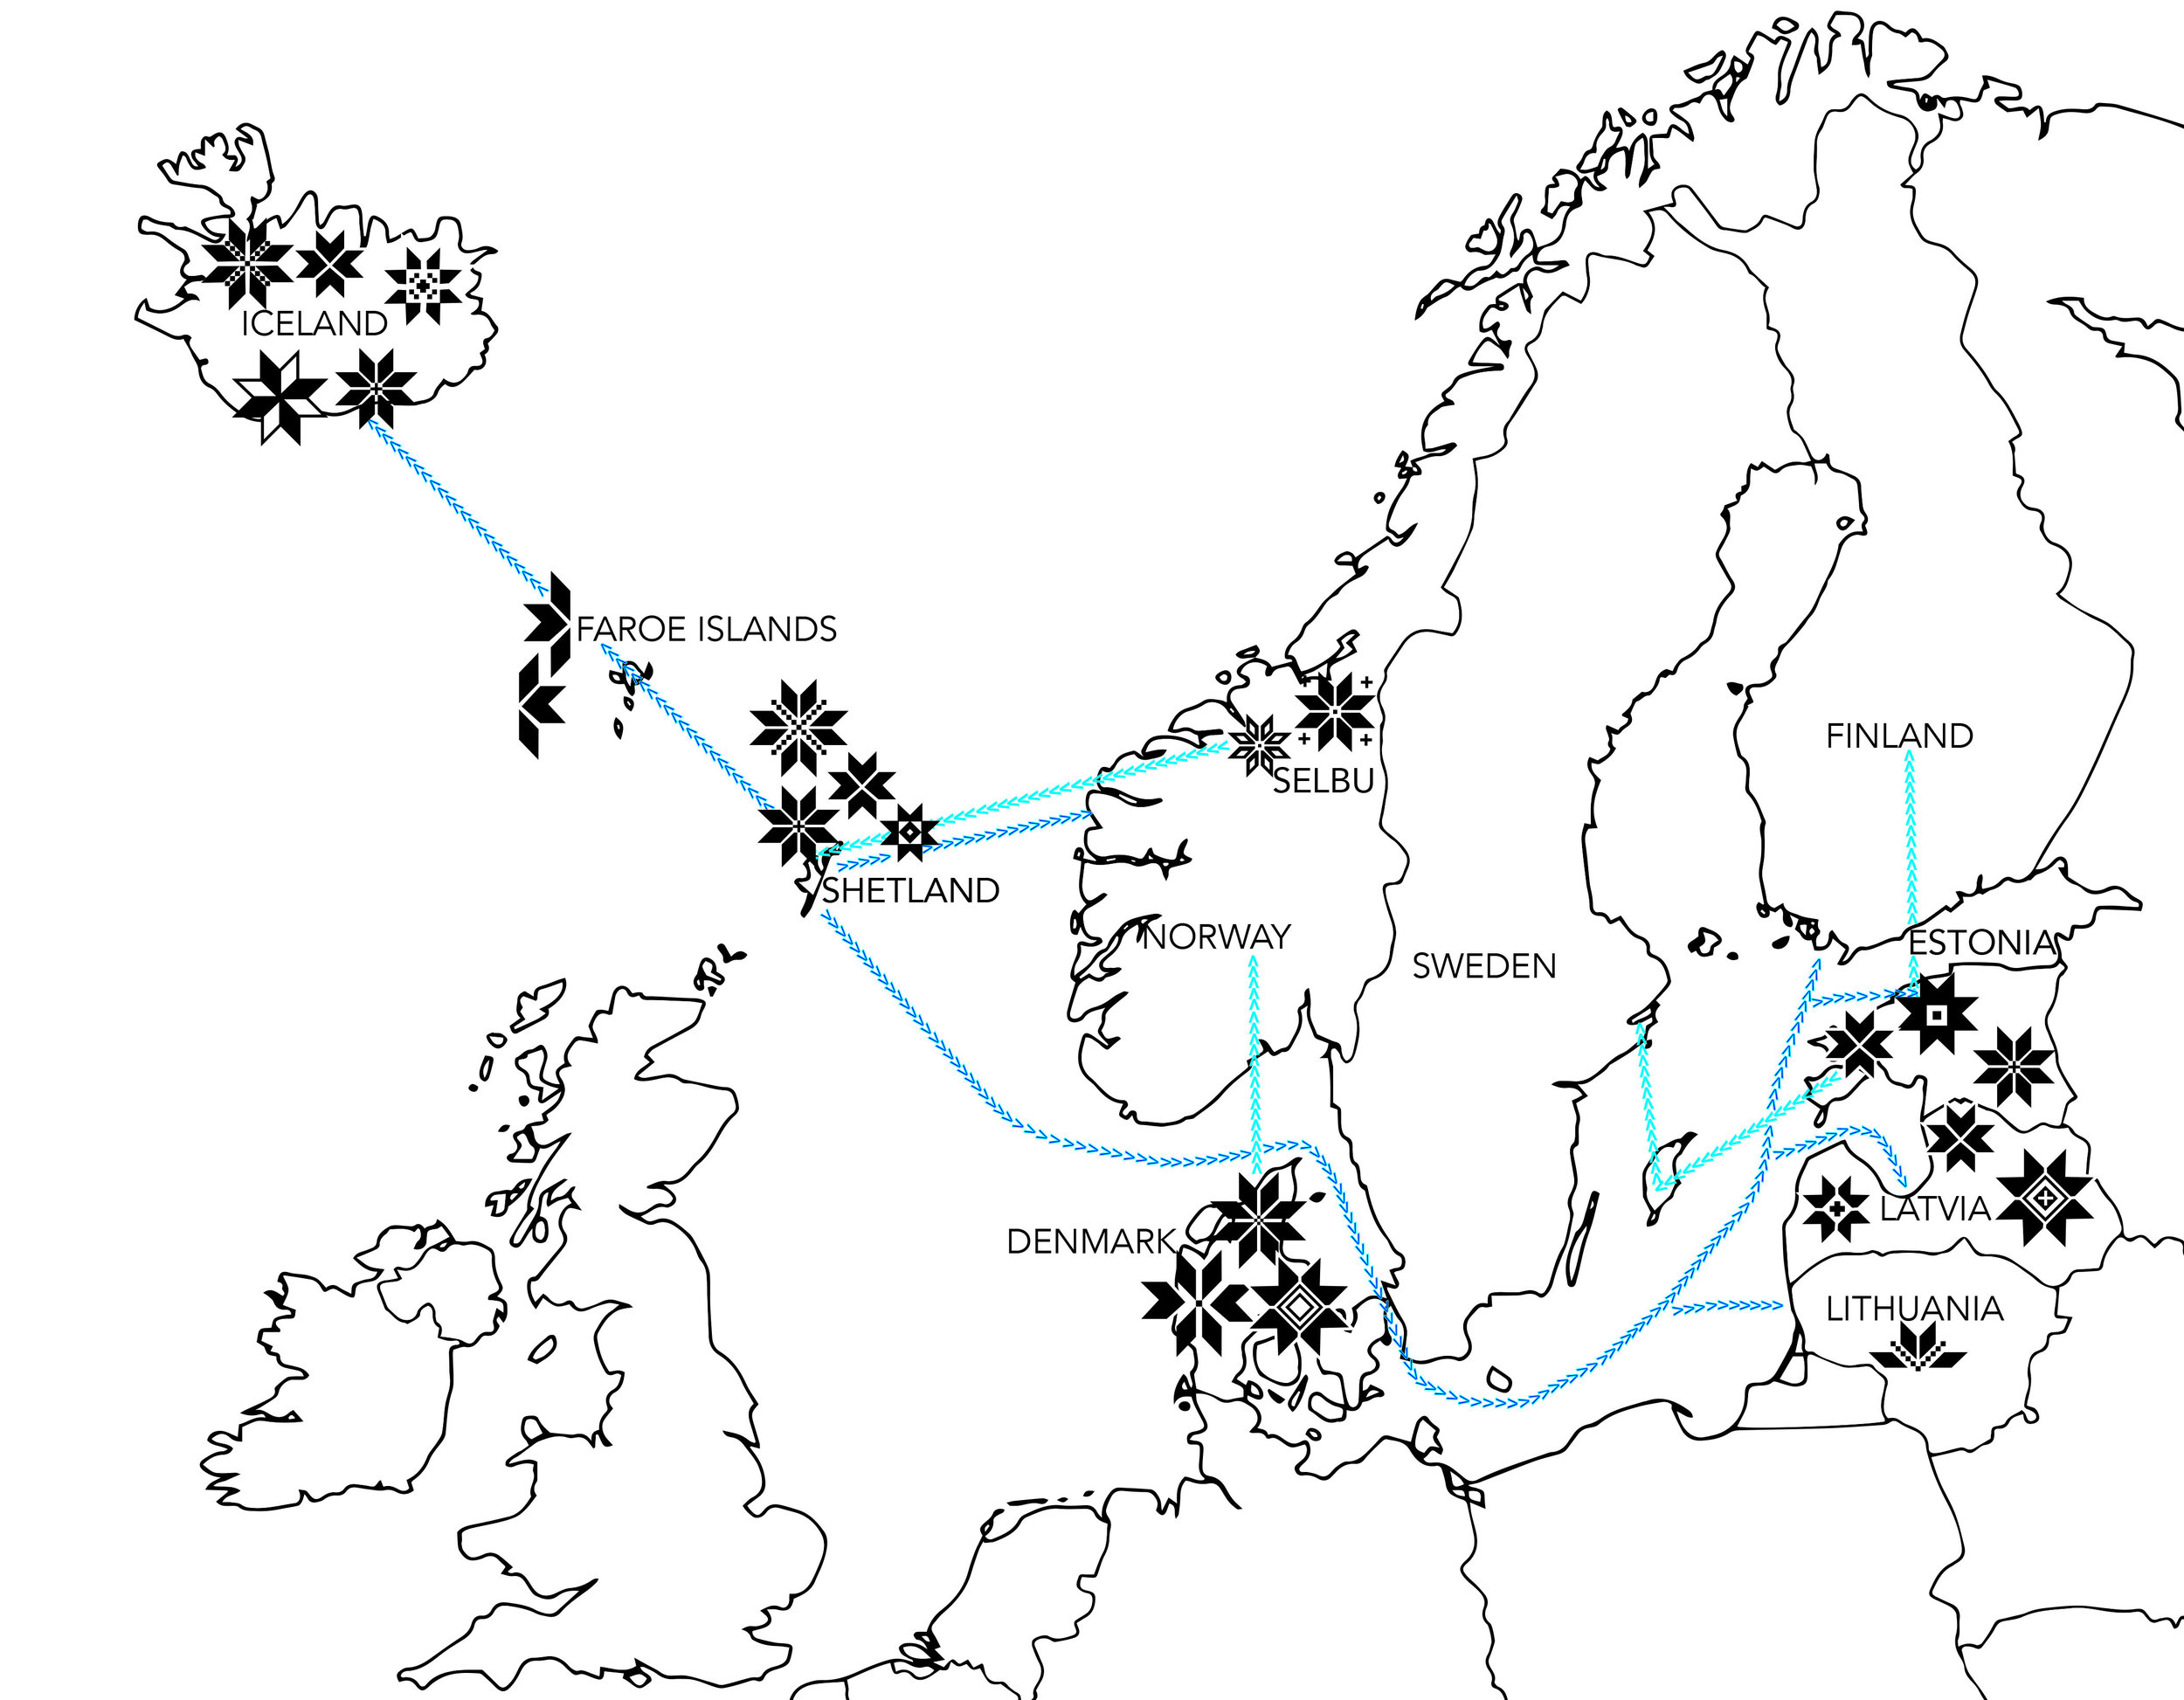 Map of eight point star motifs (sourced from books)with some known sea trade routes